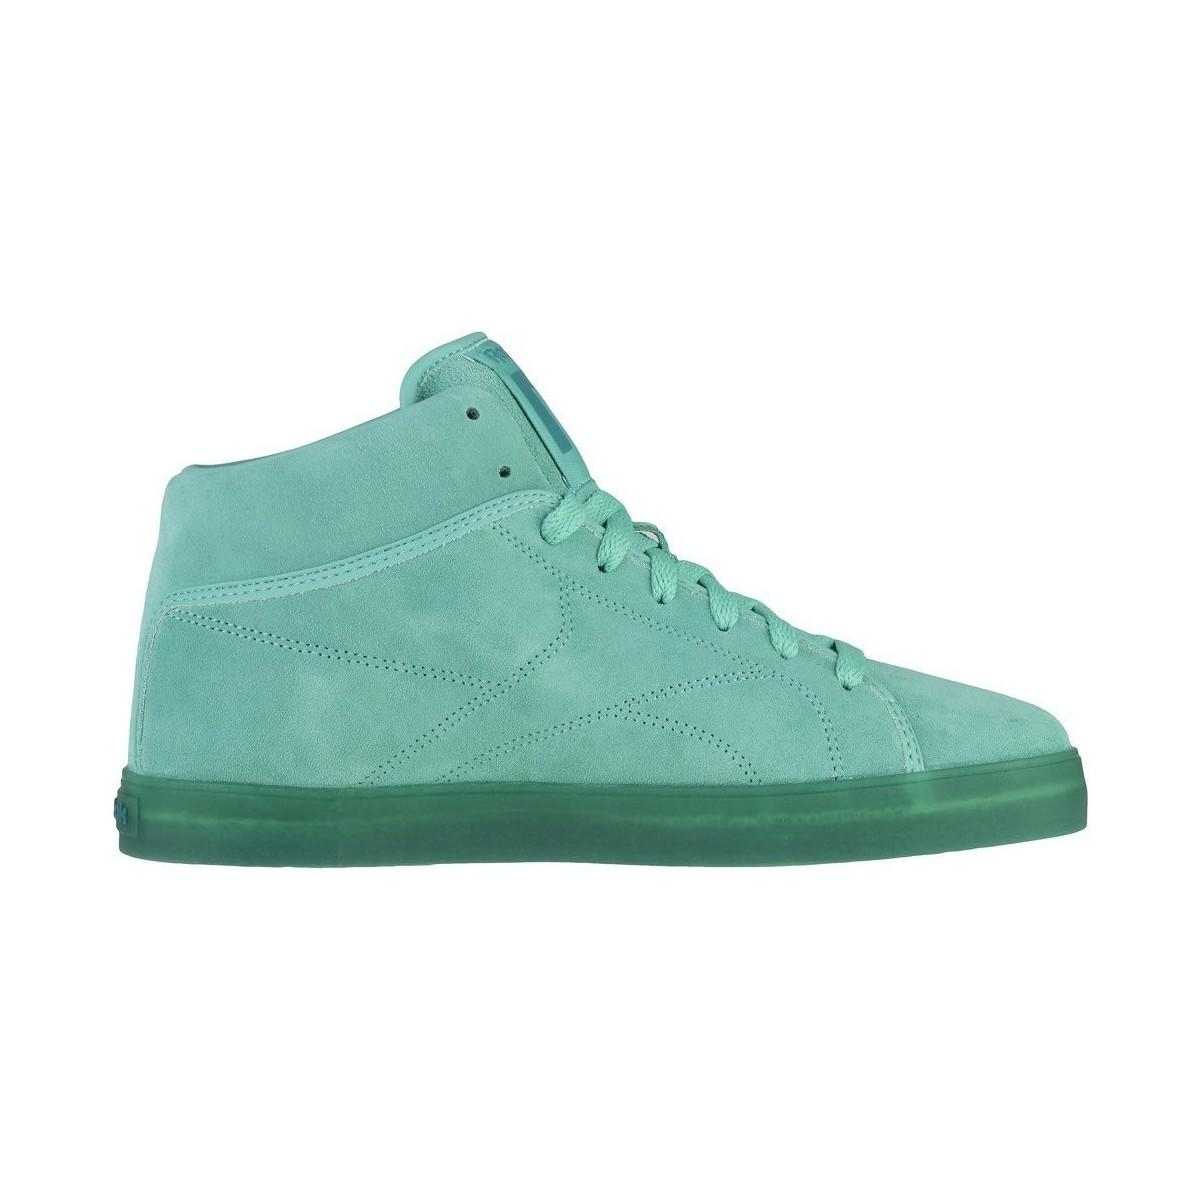 f3f09fdef94b17 Reebok T Raww Men s Shoes (high-top Trainers) In Green in Green for ...